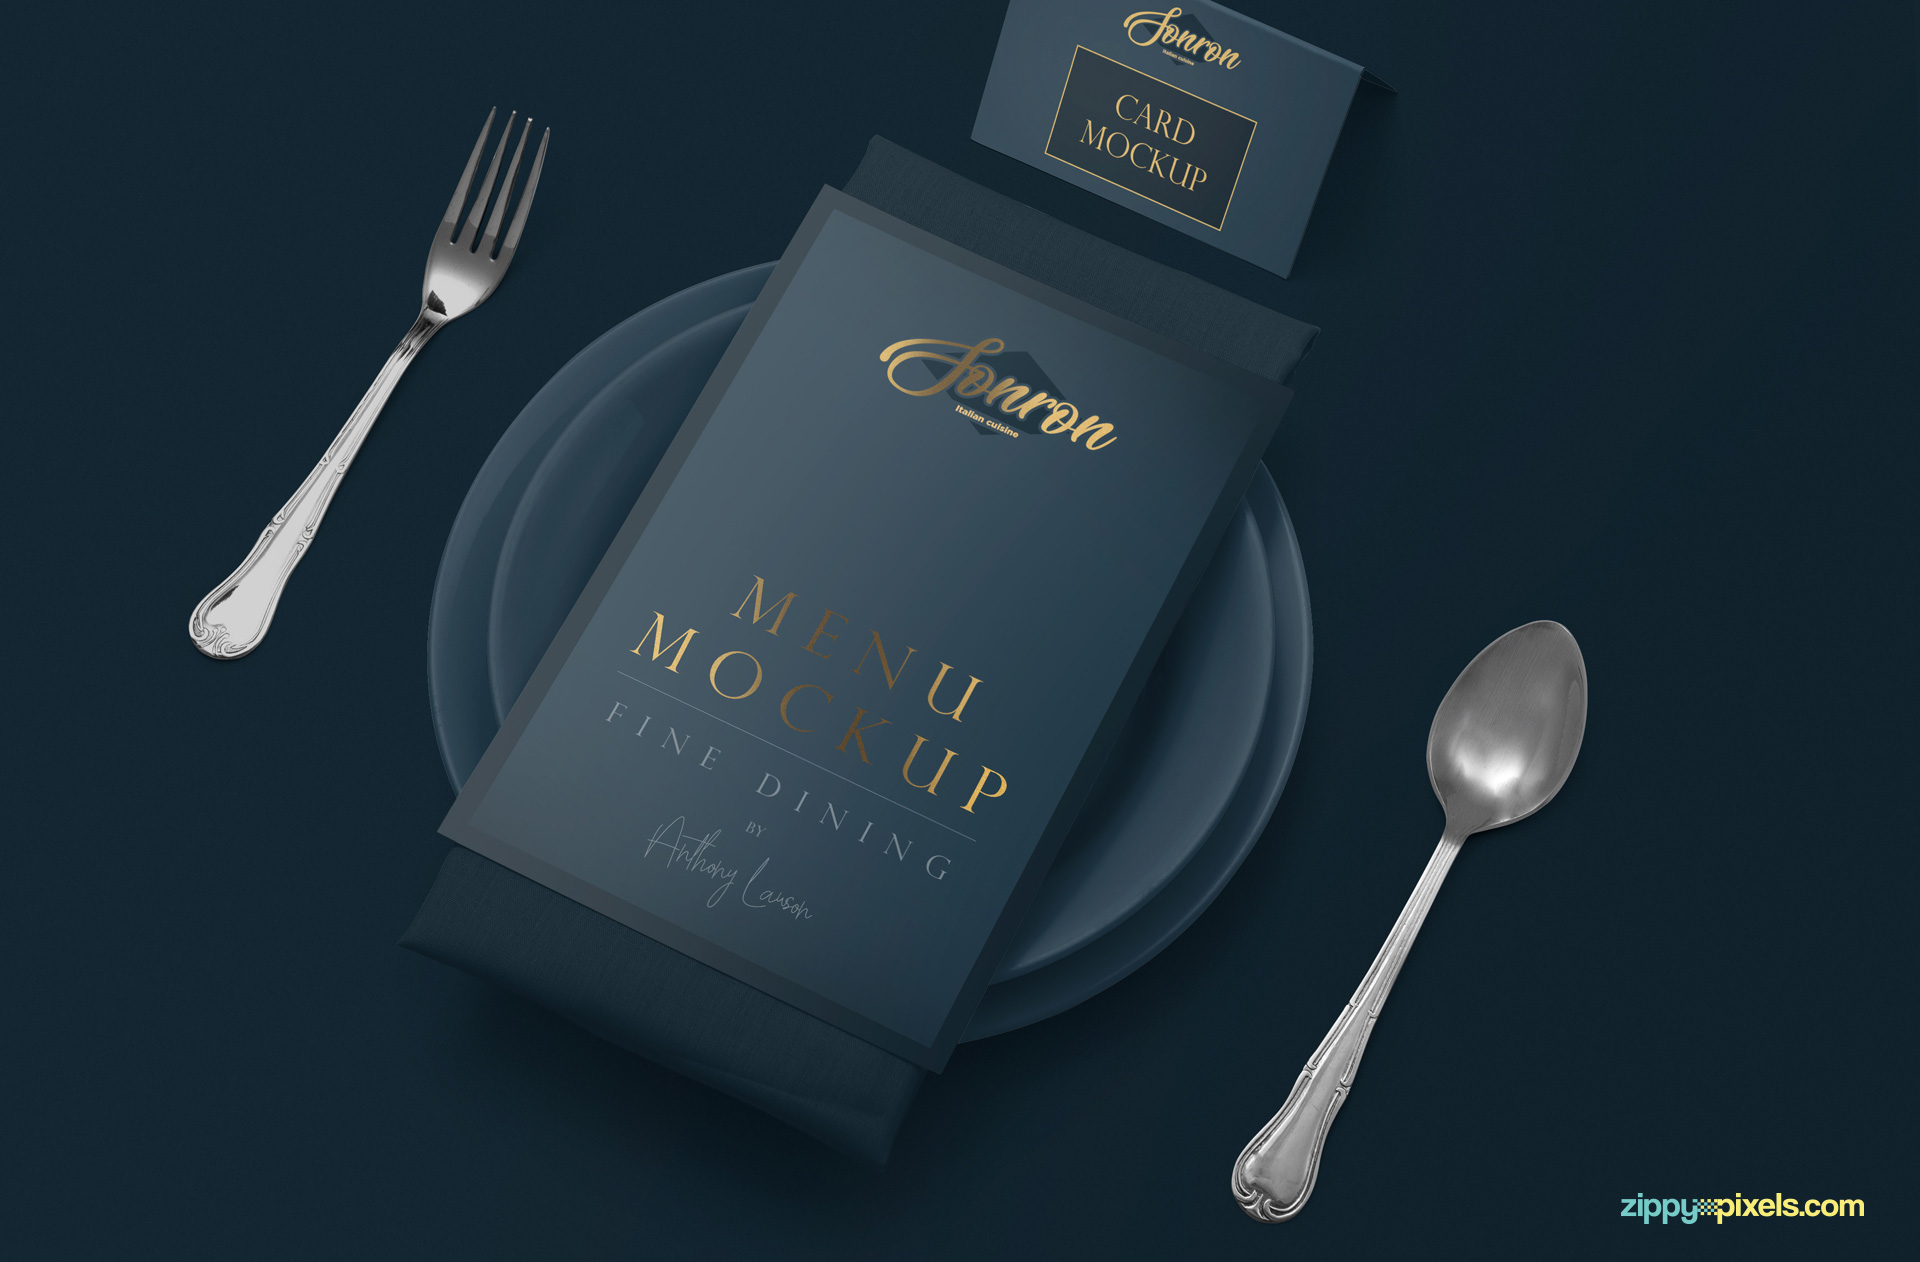 Menu card mockup scene with customizable plate, napkin, table card and cutlery.